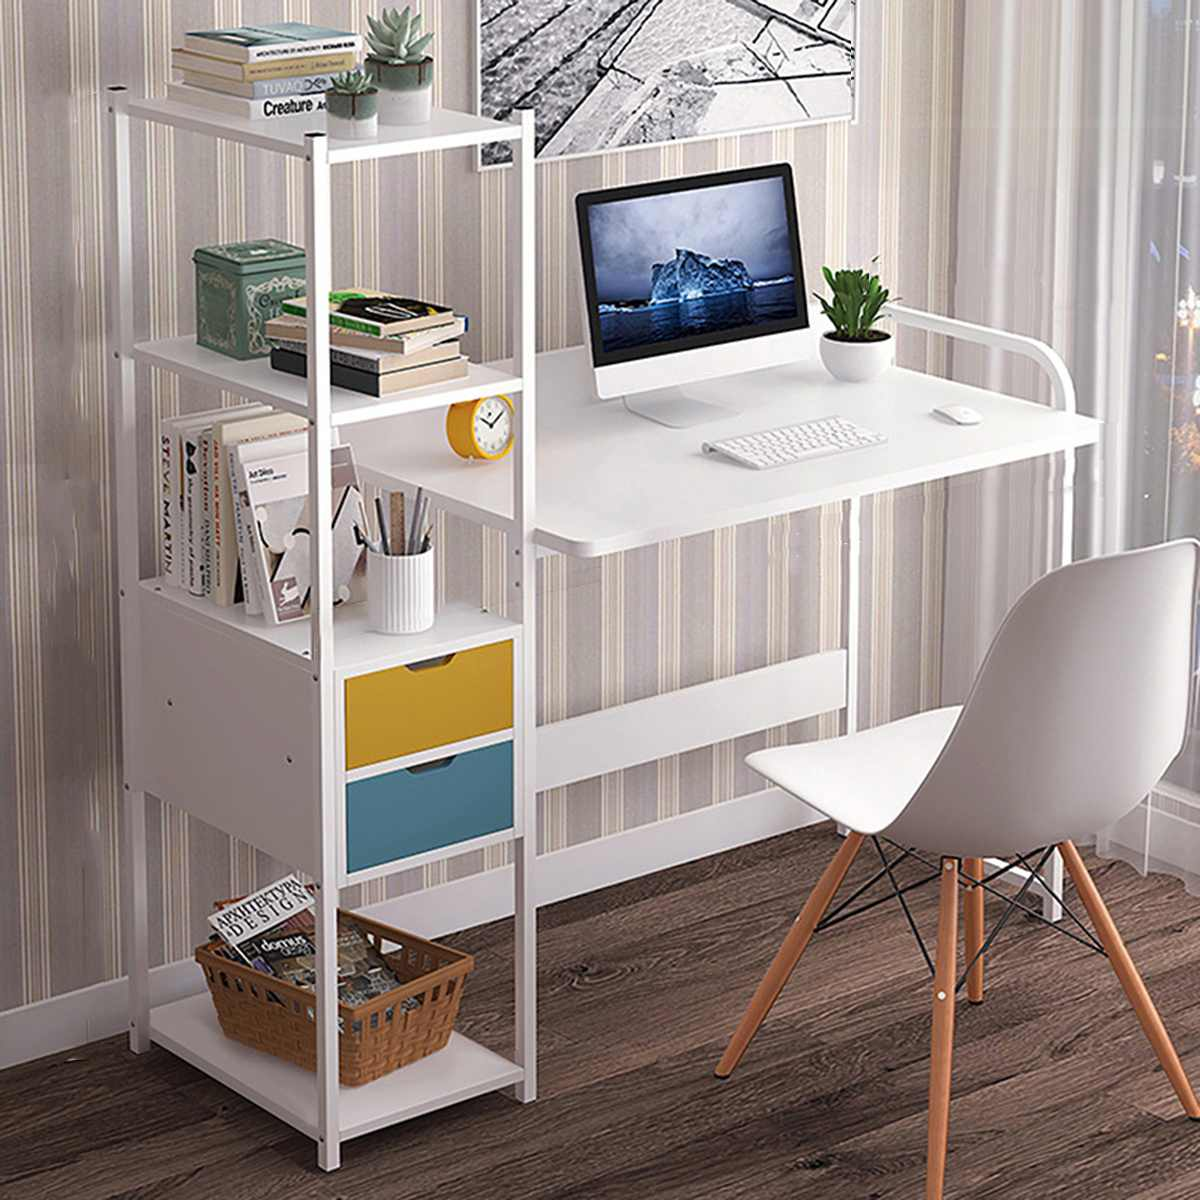 Computer Desk Laptop Desk Writing Table Study Desk with Drawers Shelves Office Furniture PC Laptop Workstation Home escritorios